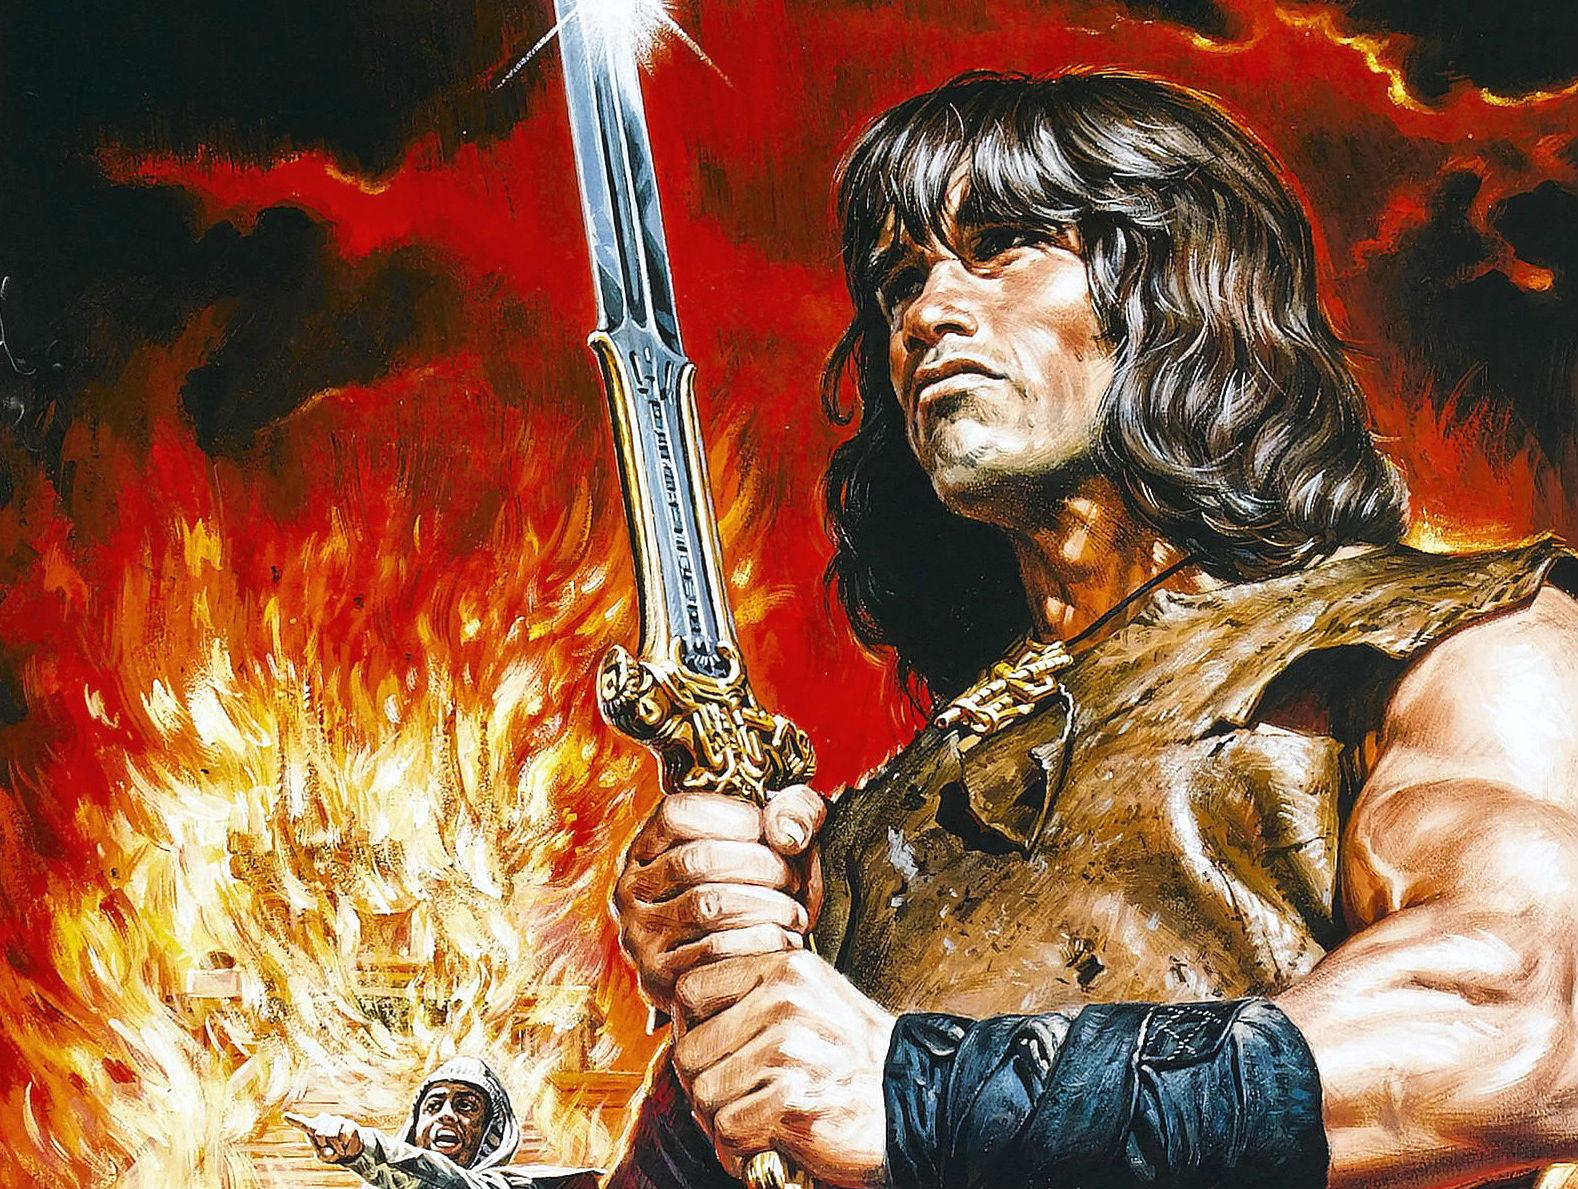 Conan The Barbarian 1982 Wallpapers HD Download 1578x1189